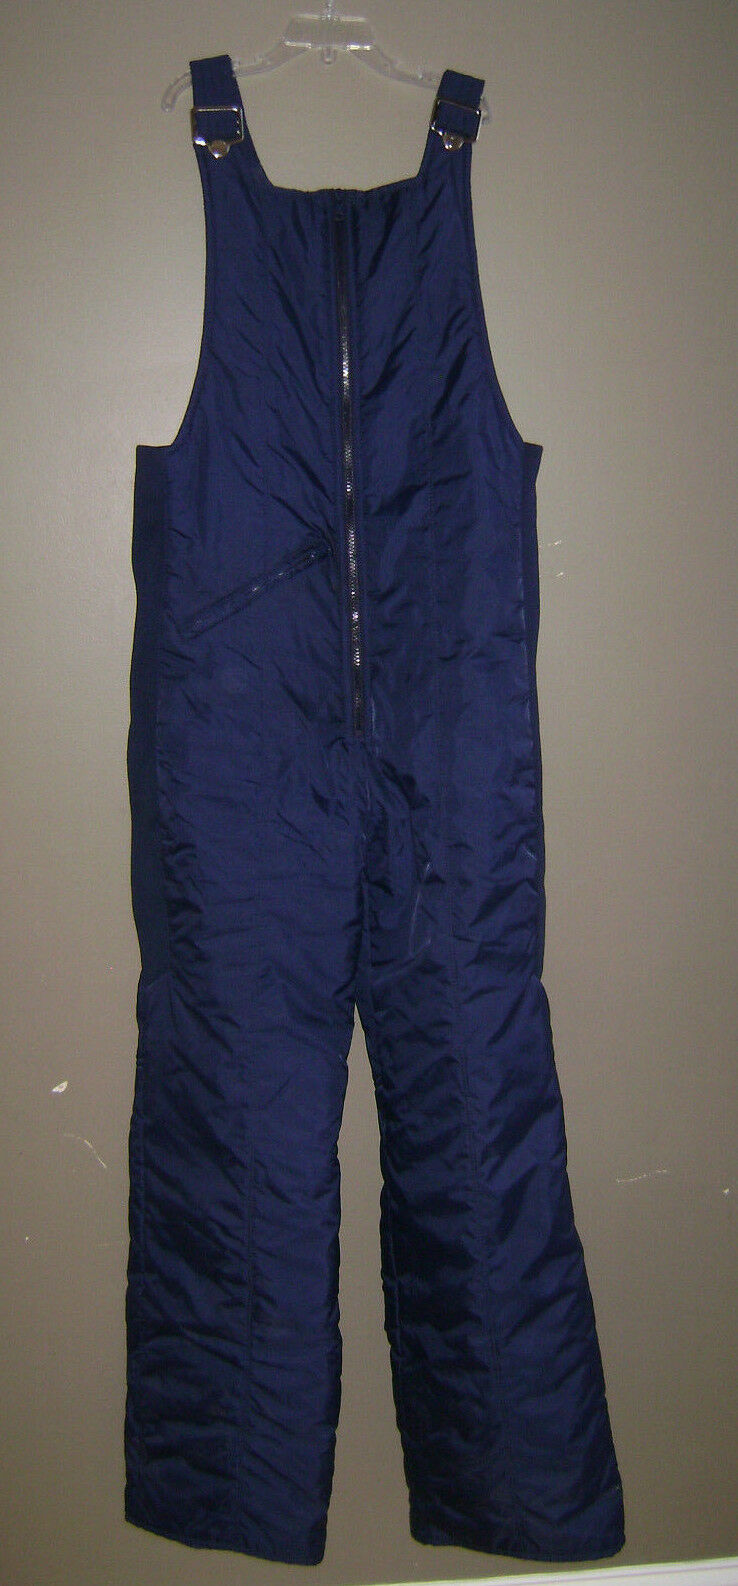 OBERMEYER RANDY SNOWBOARDS MEN SKI SNOW BIB SnowPants Pants Size M blueE